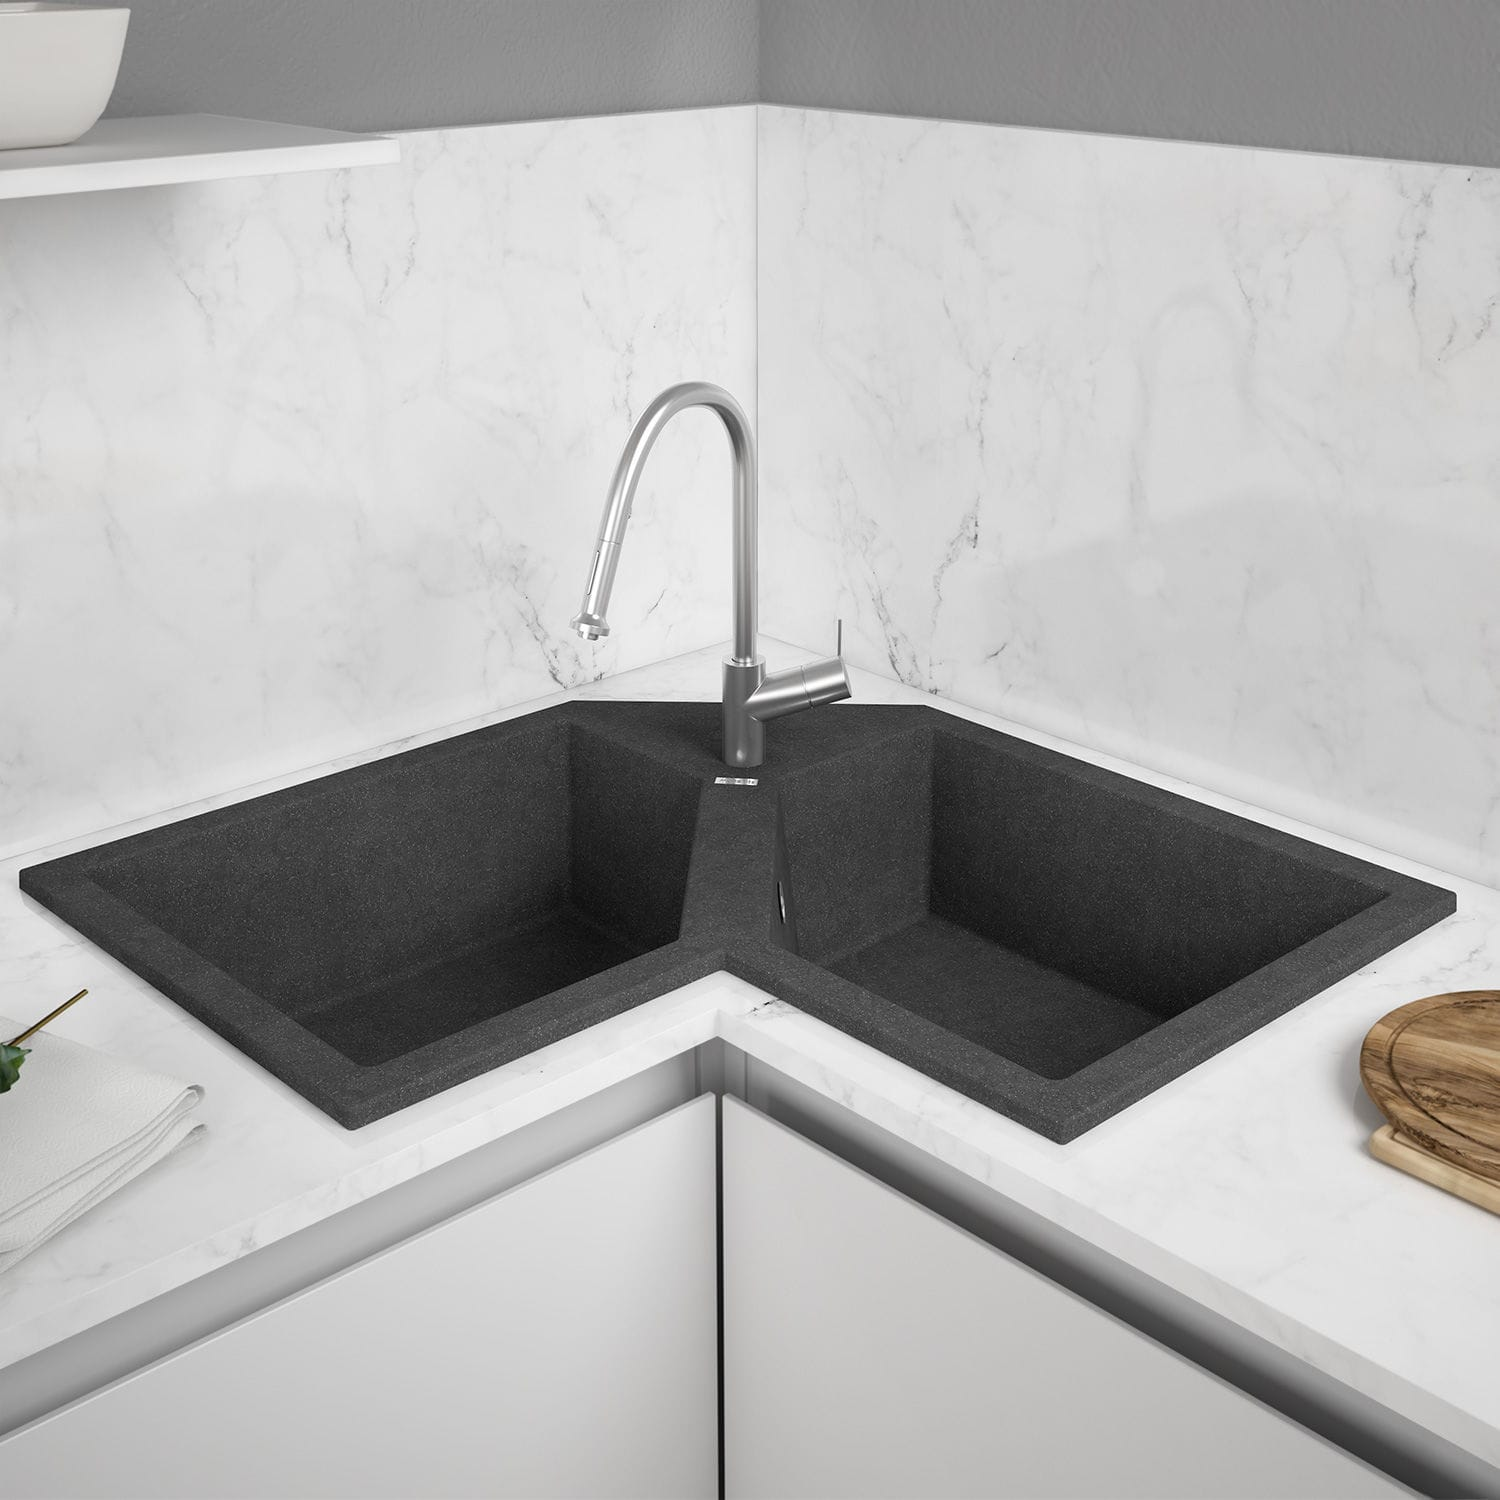 Double Kitchen Sink Supreme E830 Mundilite Composite Overmount Corner